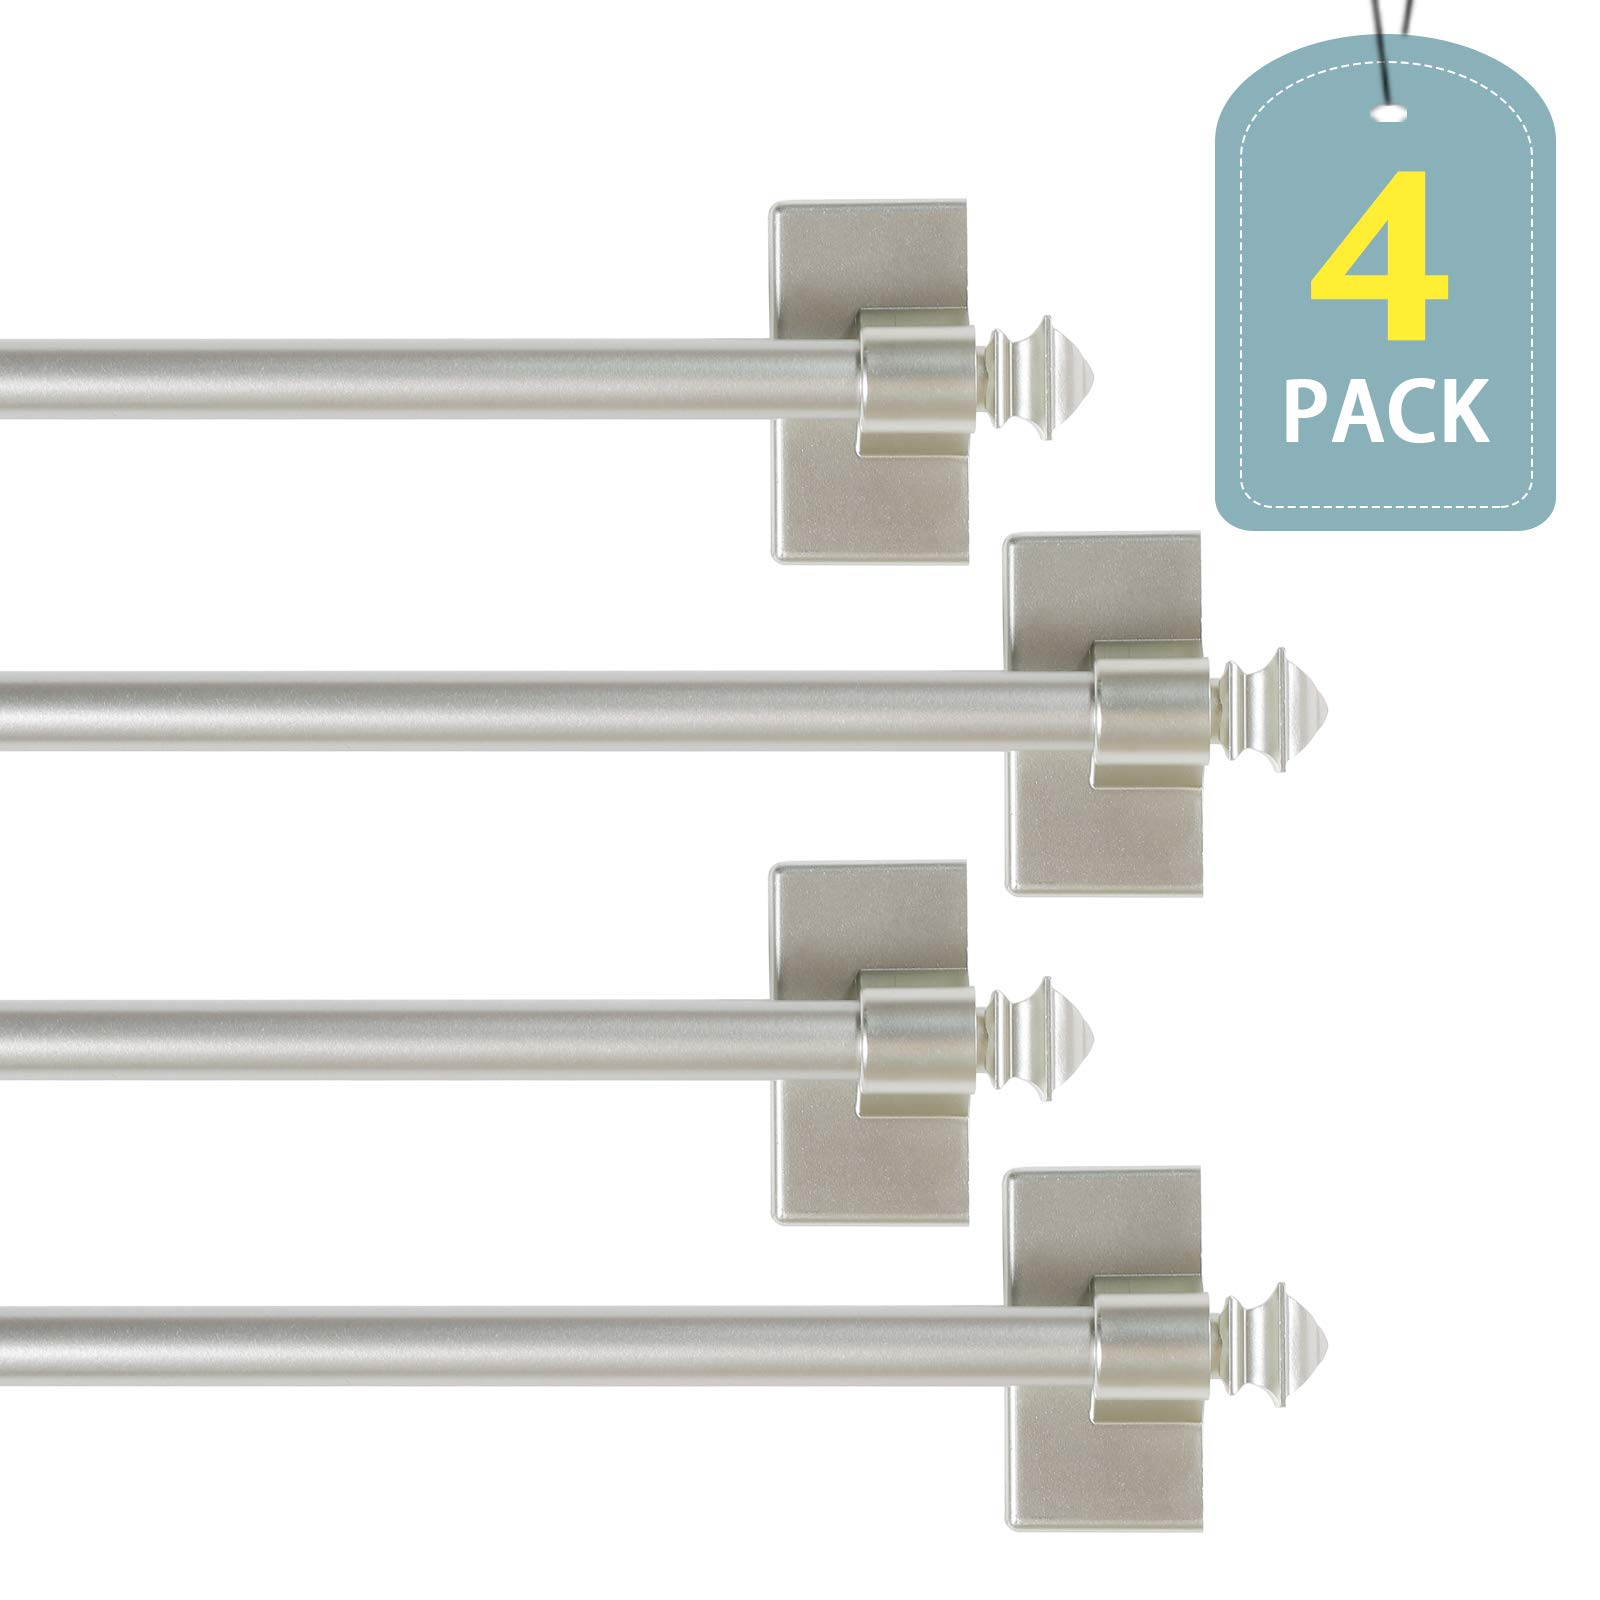 H.VERSAILTEX Multi-Use Magnetic Curtain Rods with Square Ends for Small Windows Adjustable Lenght from 16'' - 28'', Nickel, 1/2'' Diameter, 4-Pack by H.VERSAILTEX